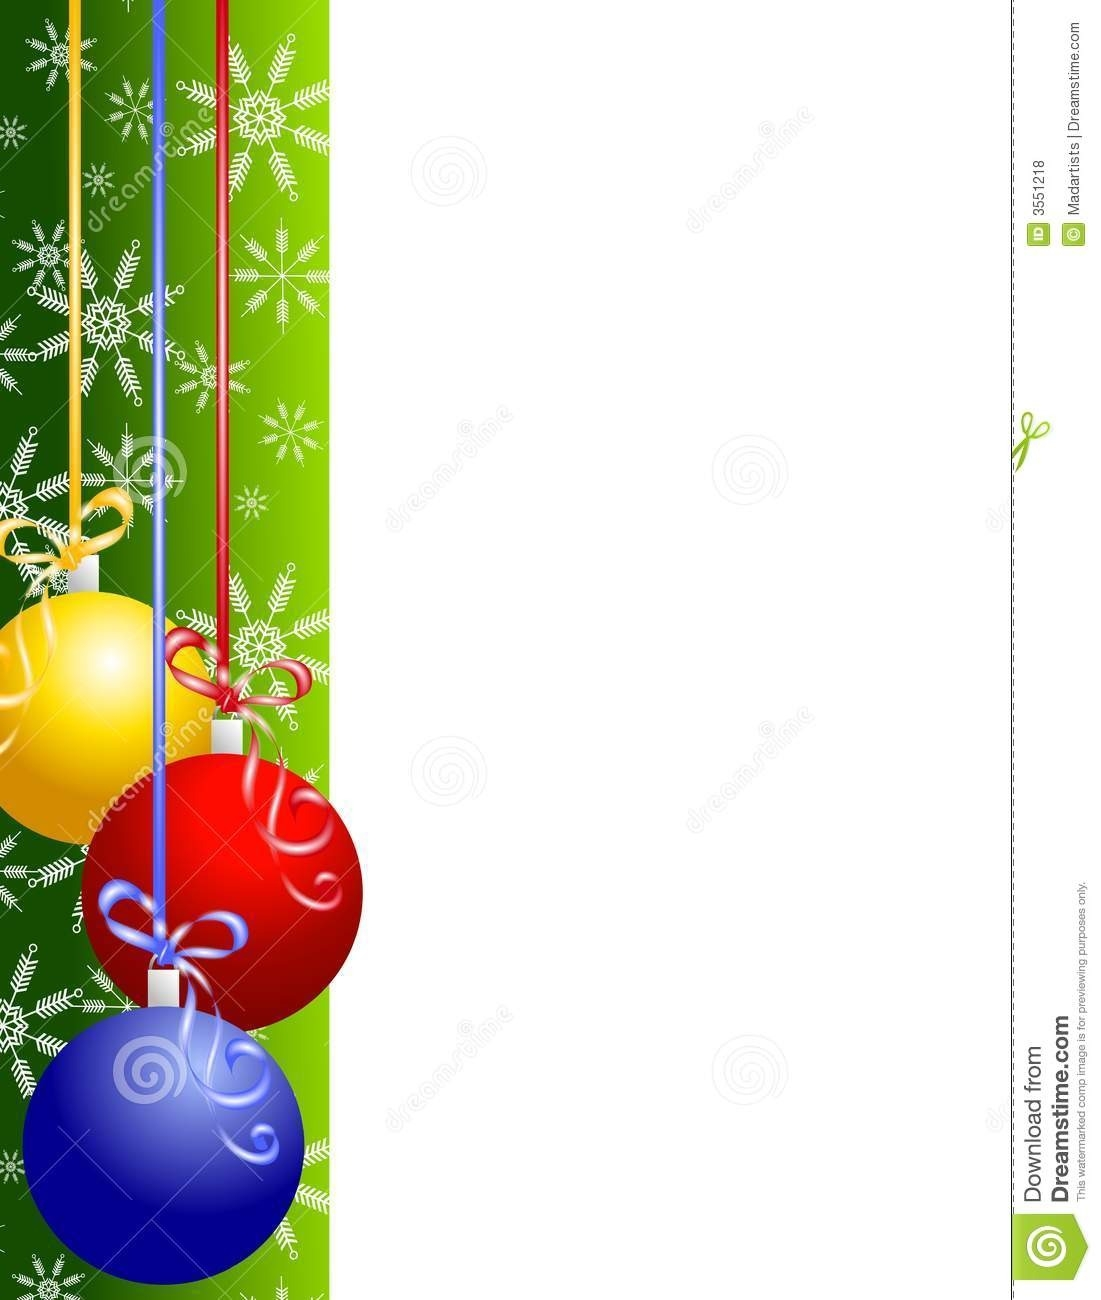 Christmas Border Decorations Clipart.